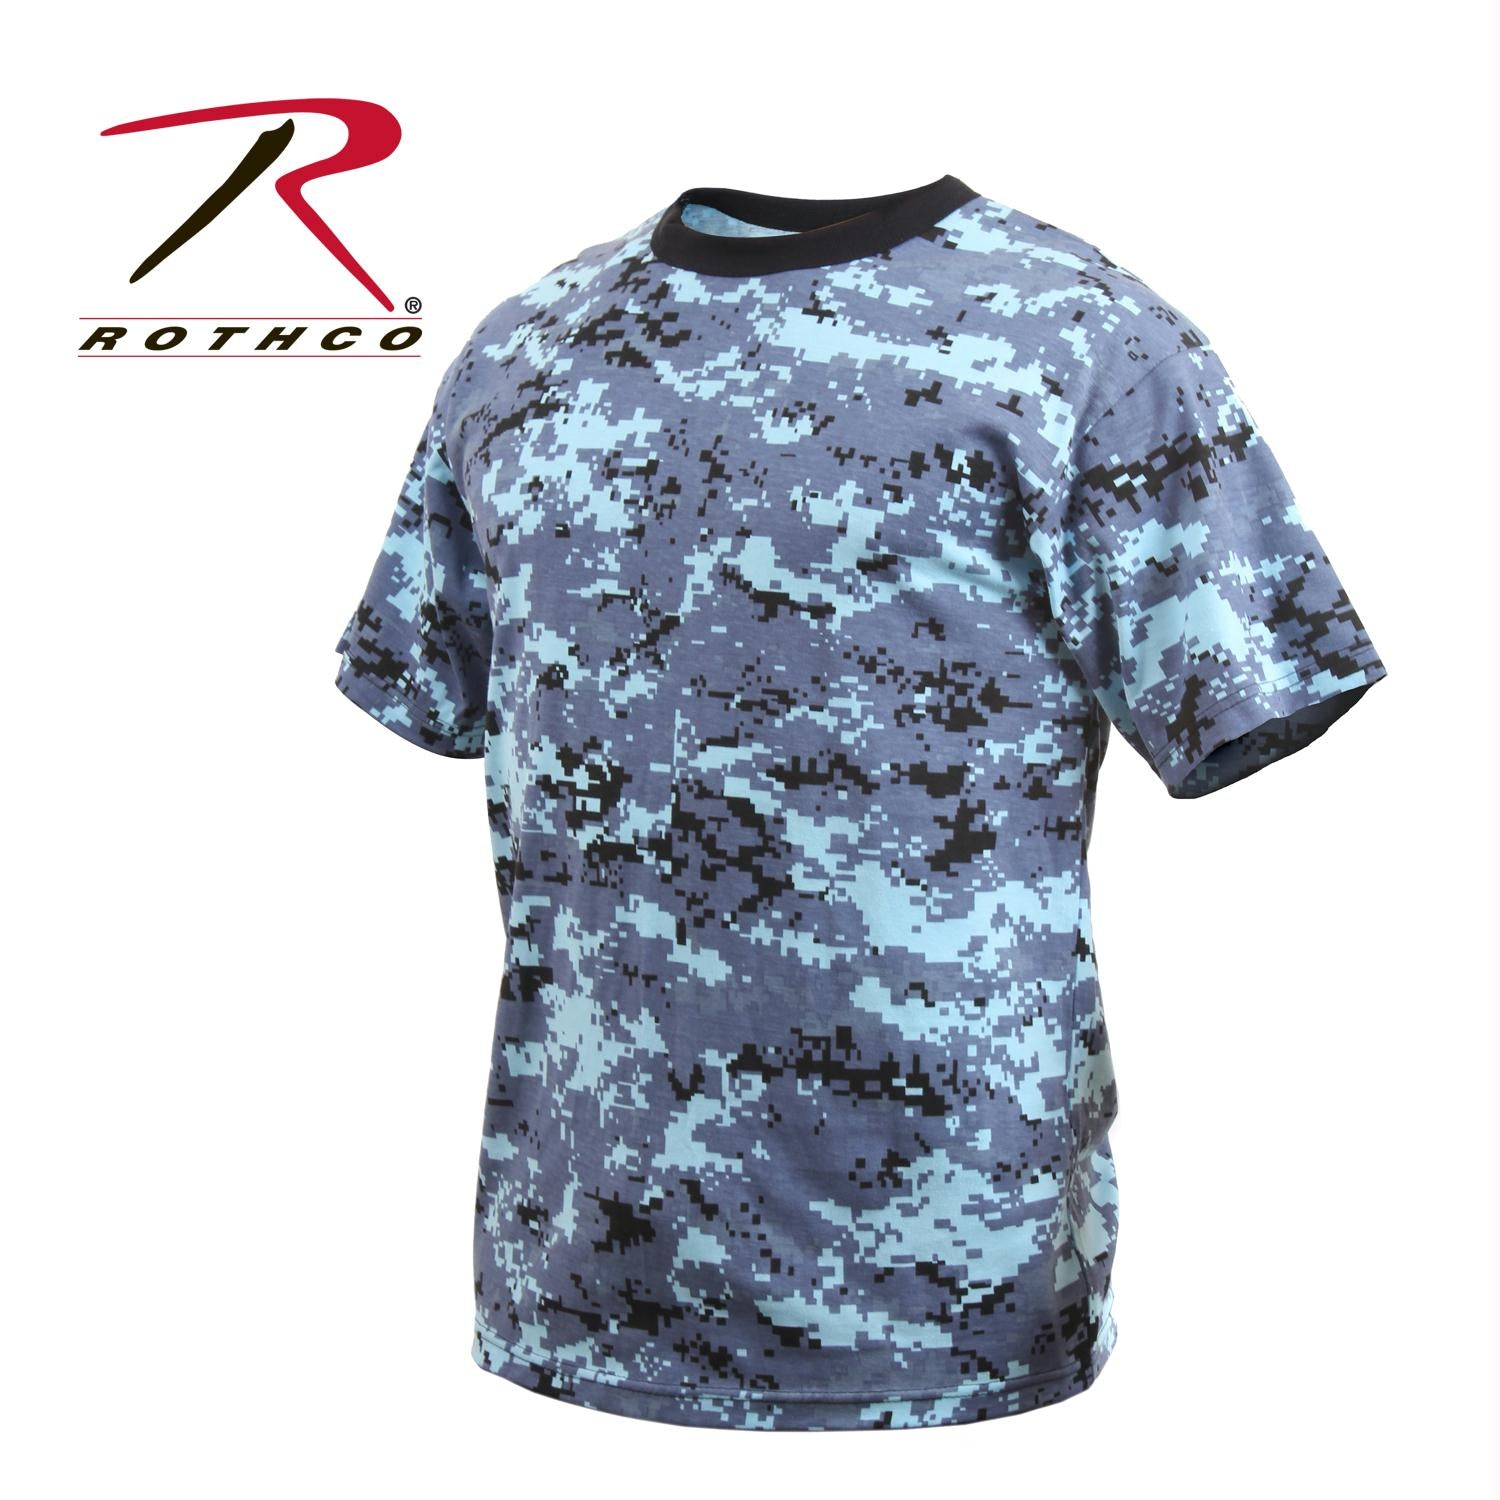 Rothco Digital Camo T-Shirt - Sky Blue Digital Camo / 4XL